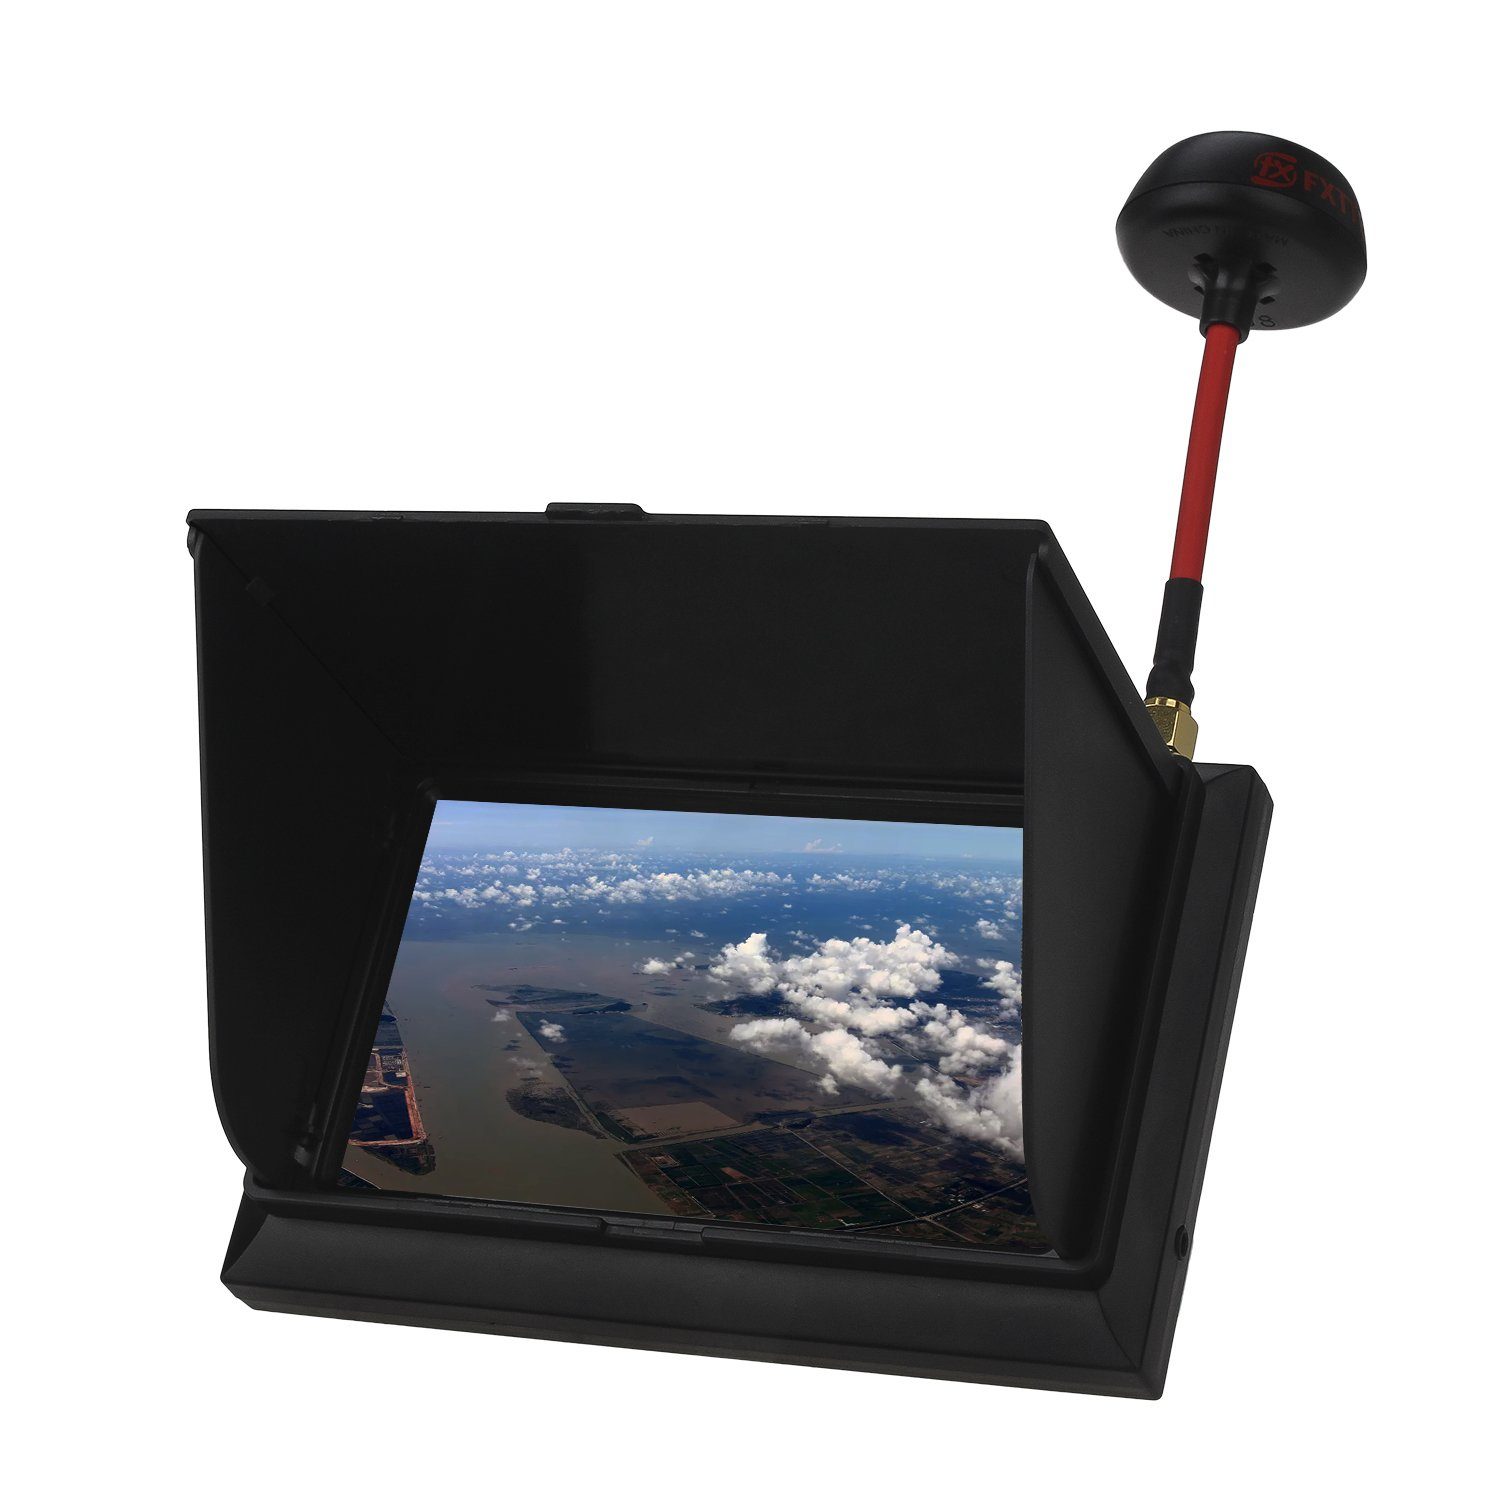 TOMLOV FPV Monitor Wireless Receiver 4.3'' LCD AV Display Screen 500cd/m2 High Bright 5.8G 32Ch with Sun Hood for RC FPV Quadcopter Drone by TOMLOV